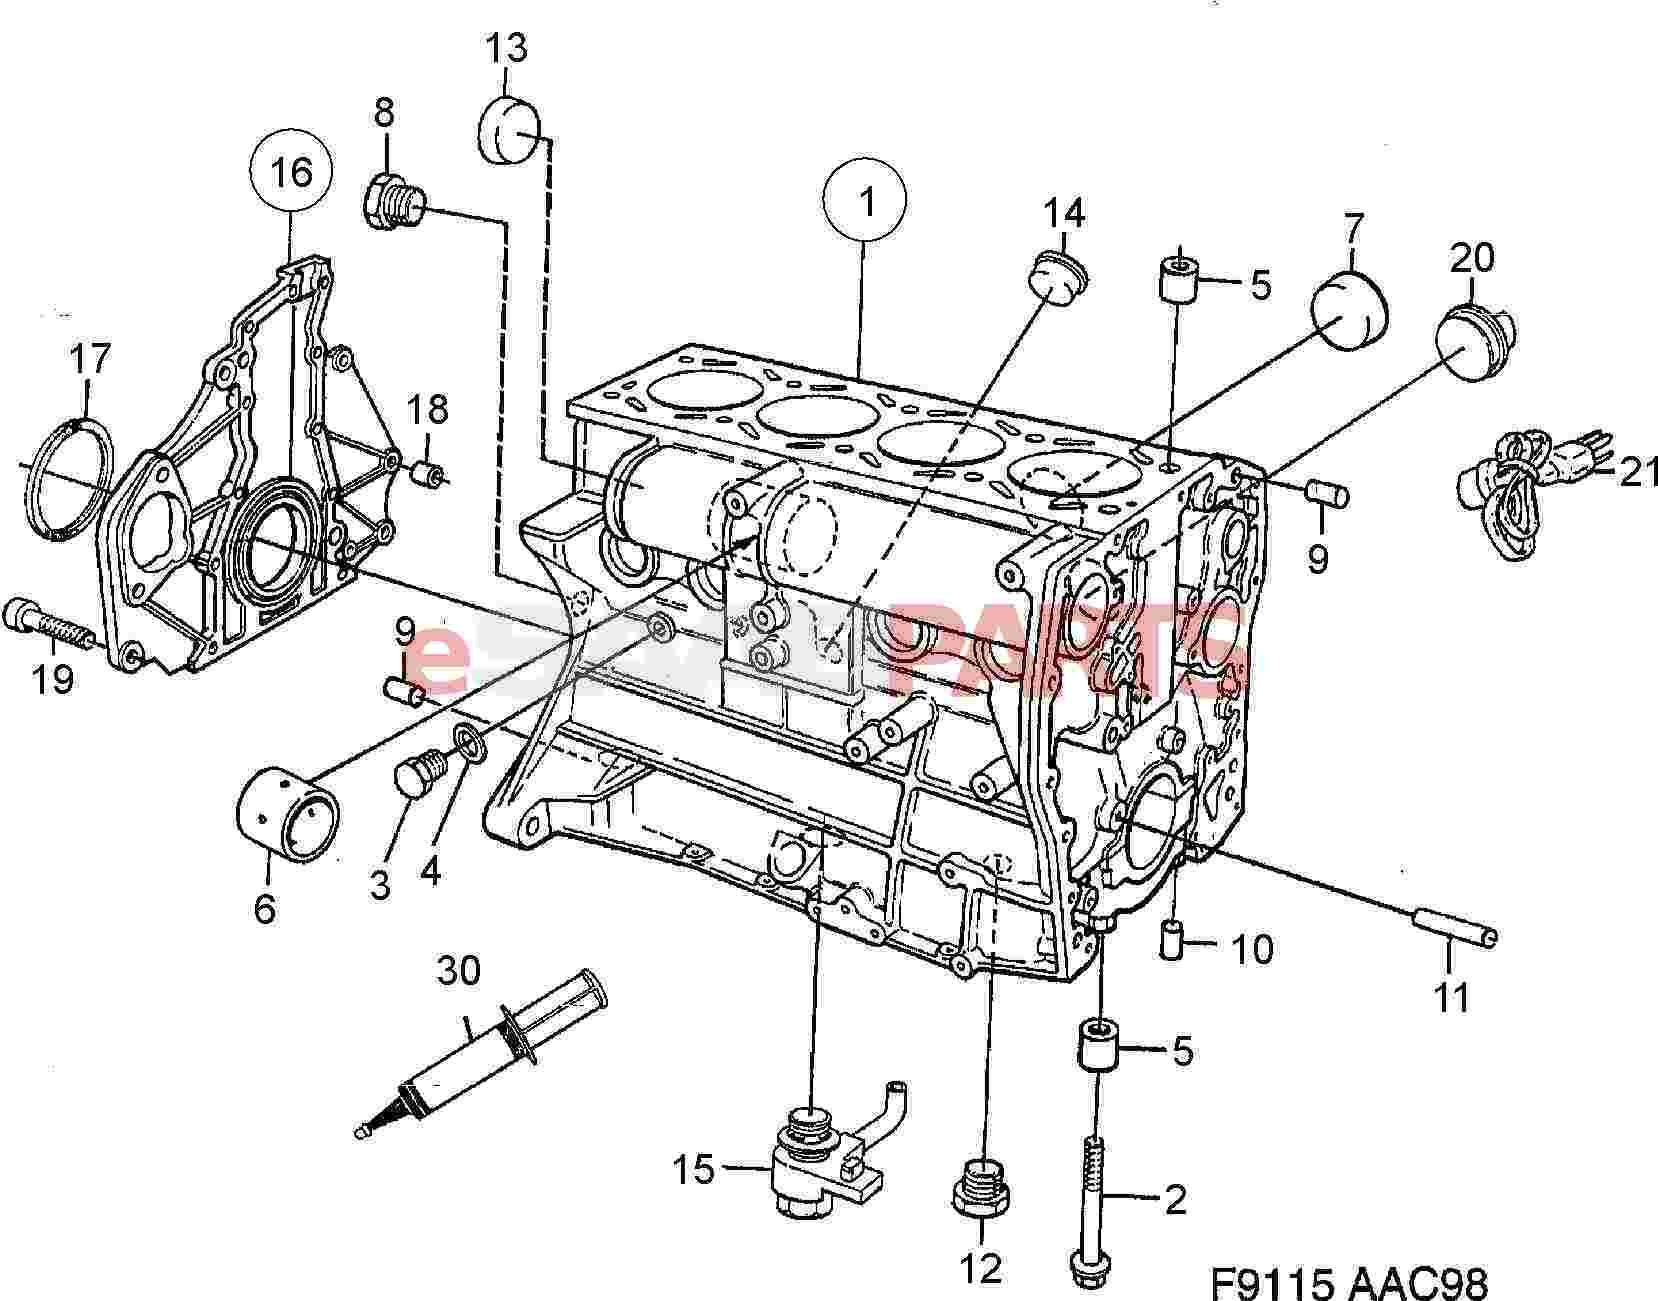 Saab 9 3 Parts Diagram • Wiring Diagram For Free